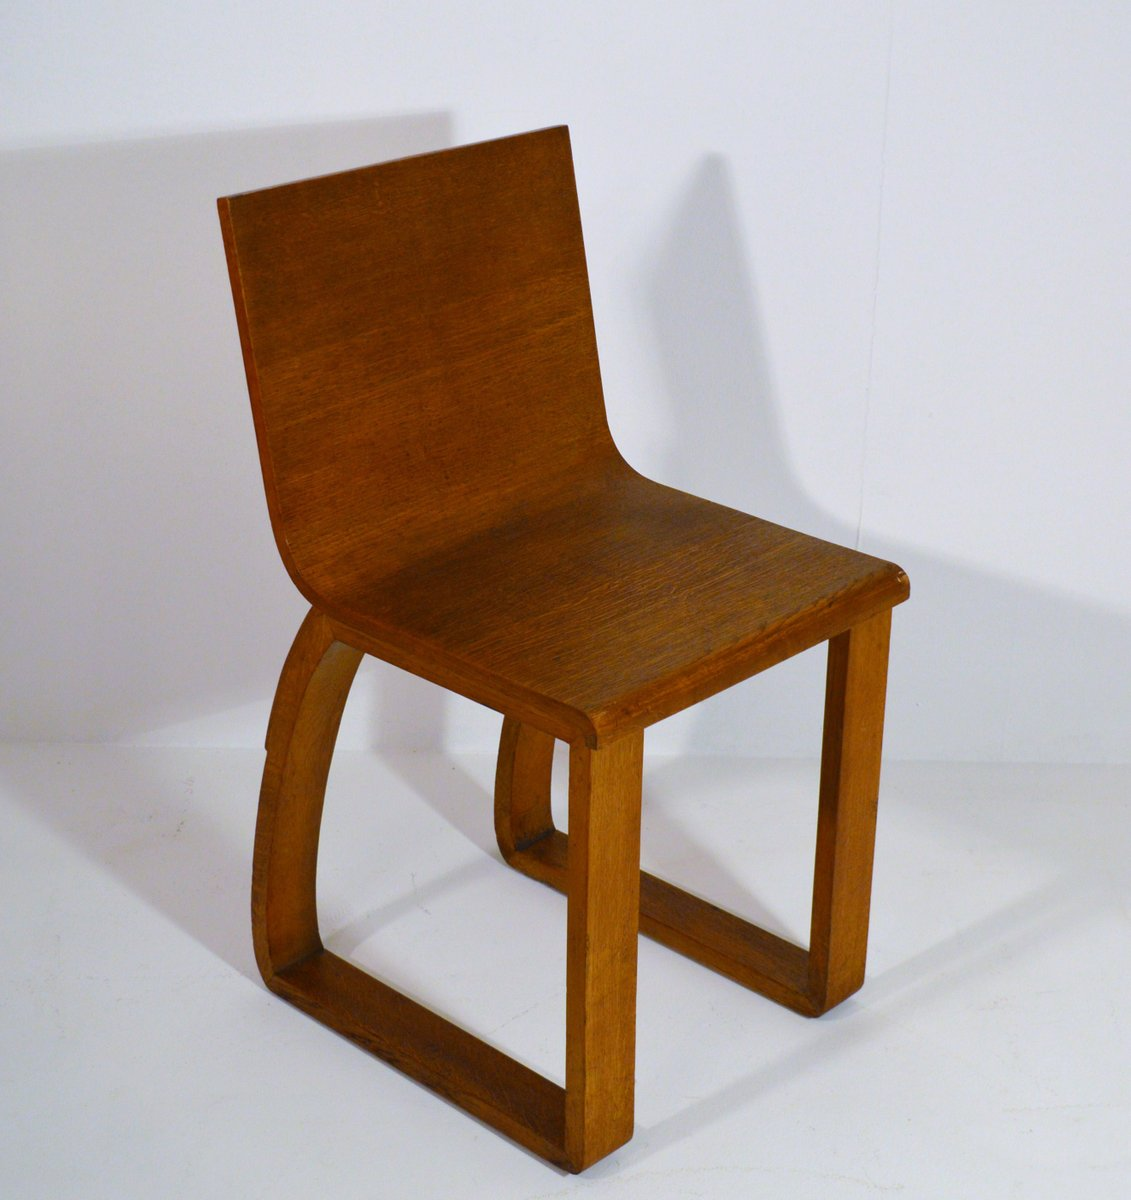 French oak chair 1930s for sale at pamono for Chair design 1930